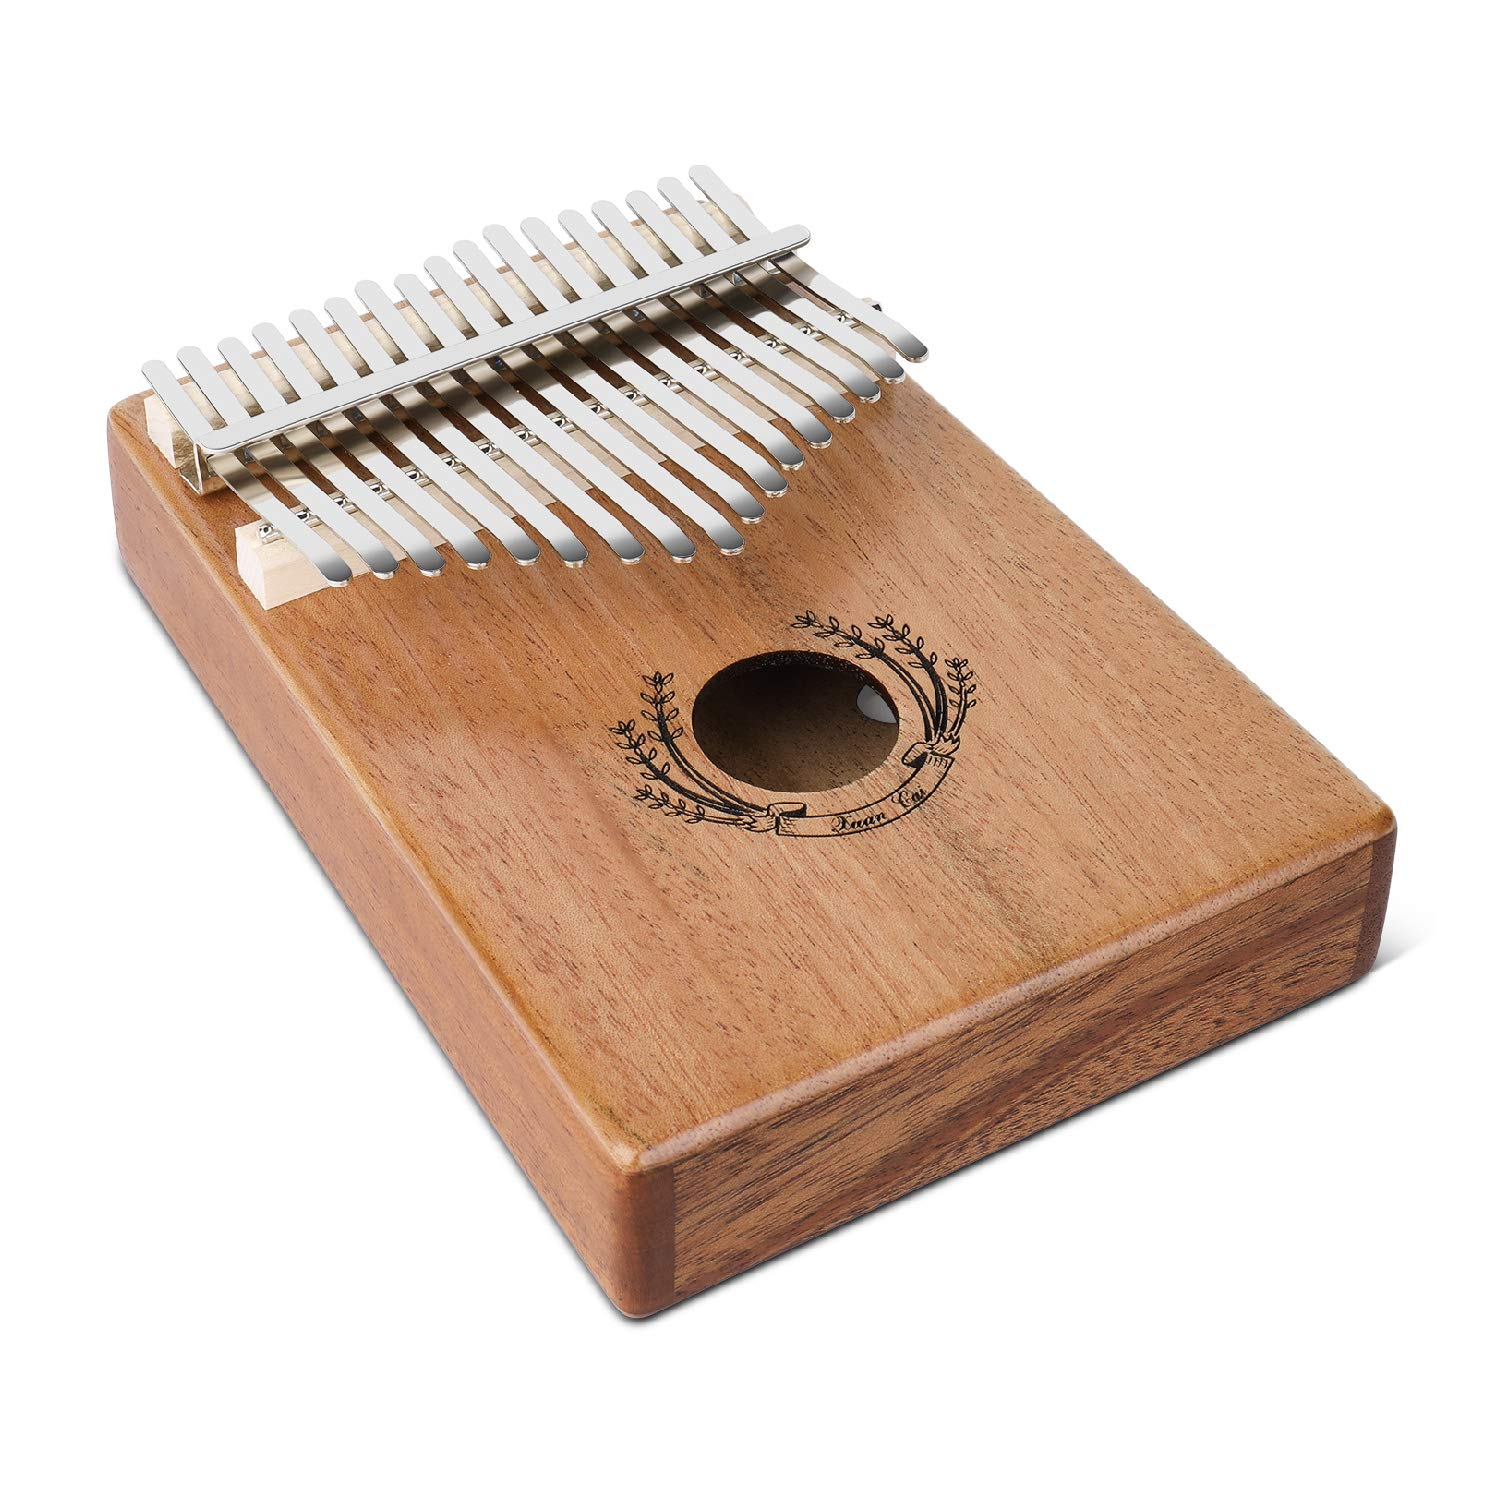 Flexzion Kalimba 17 Keys Thumb Piano, Mbira 17 Tone Finger Piano Portable African Musical Instrument with Musical Scorebook/Learning Booklet, Tune Hammer, Storage Carrying Bag by Flexzion (Image #2)